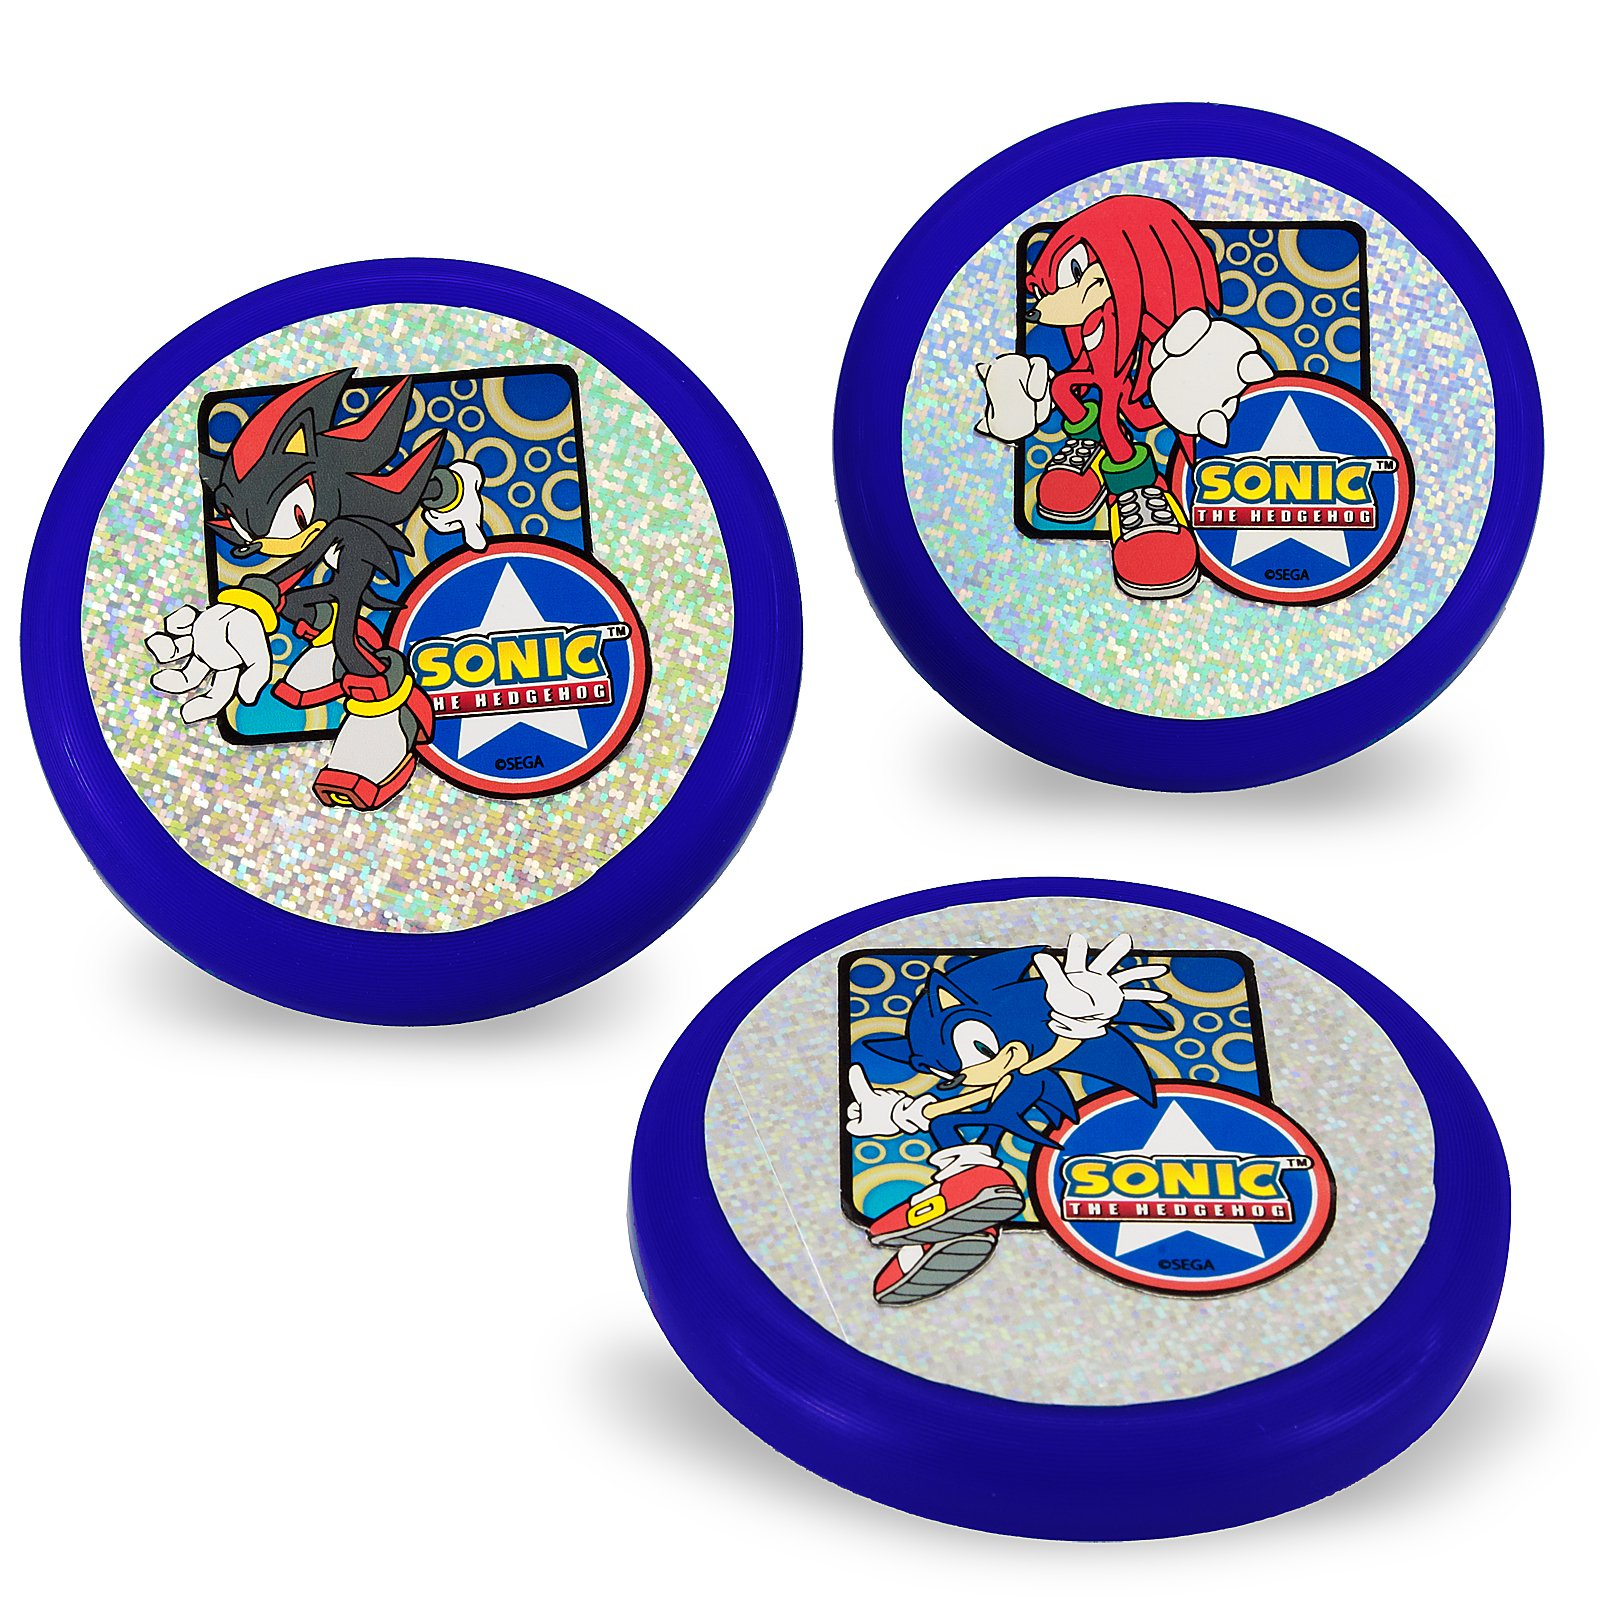 "Sonic the Hedgehog 3.5"" Flying Discs (3 count)"